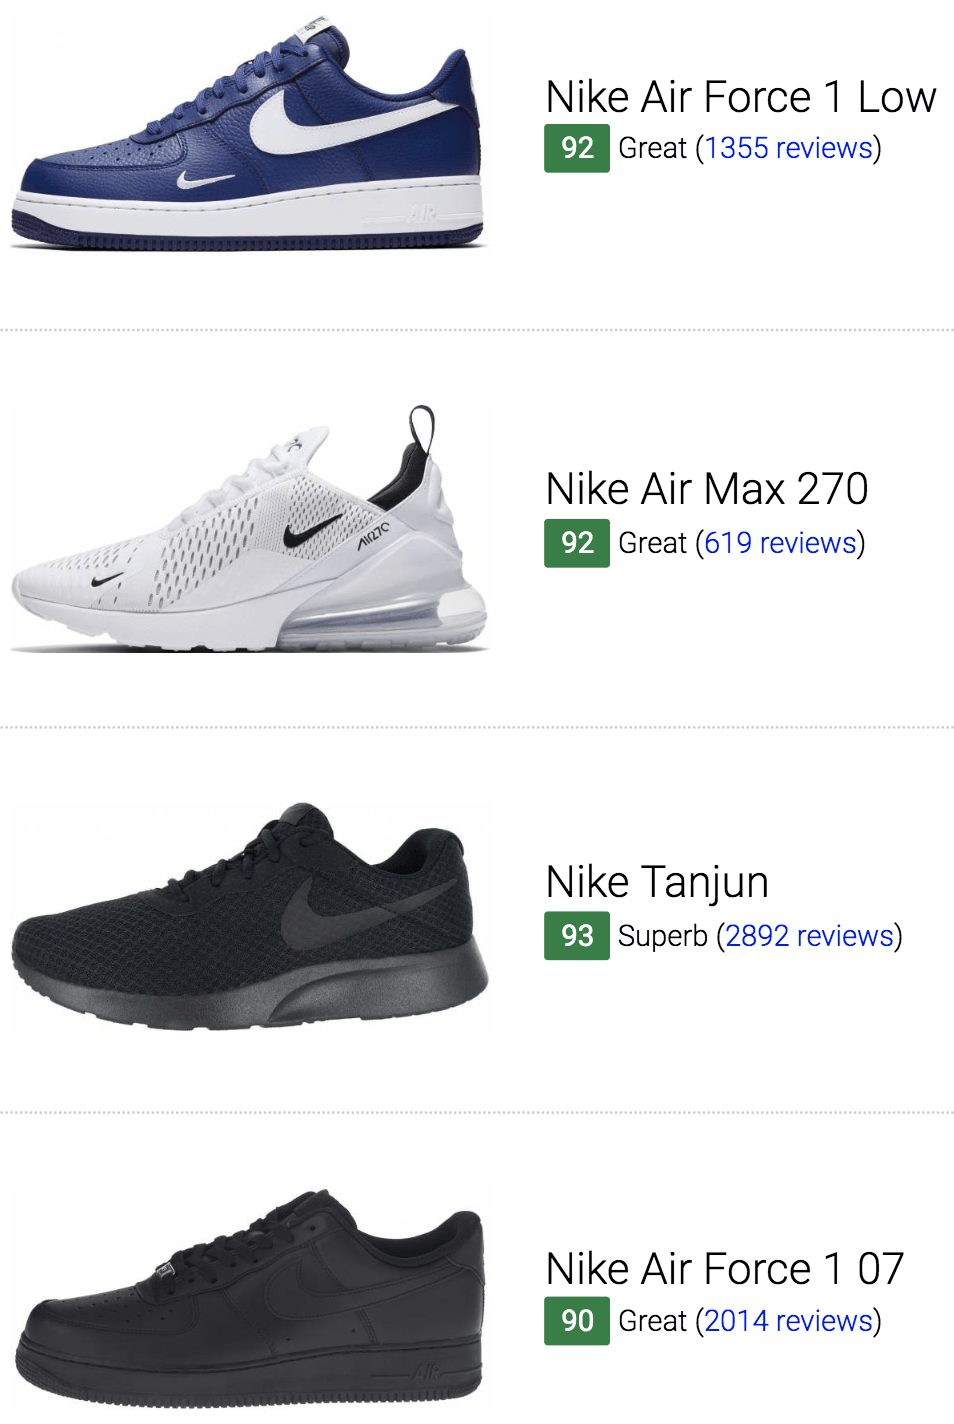 30+ Best Nike Sneakers (Buyer's Guide) | RunRepeat